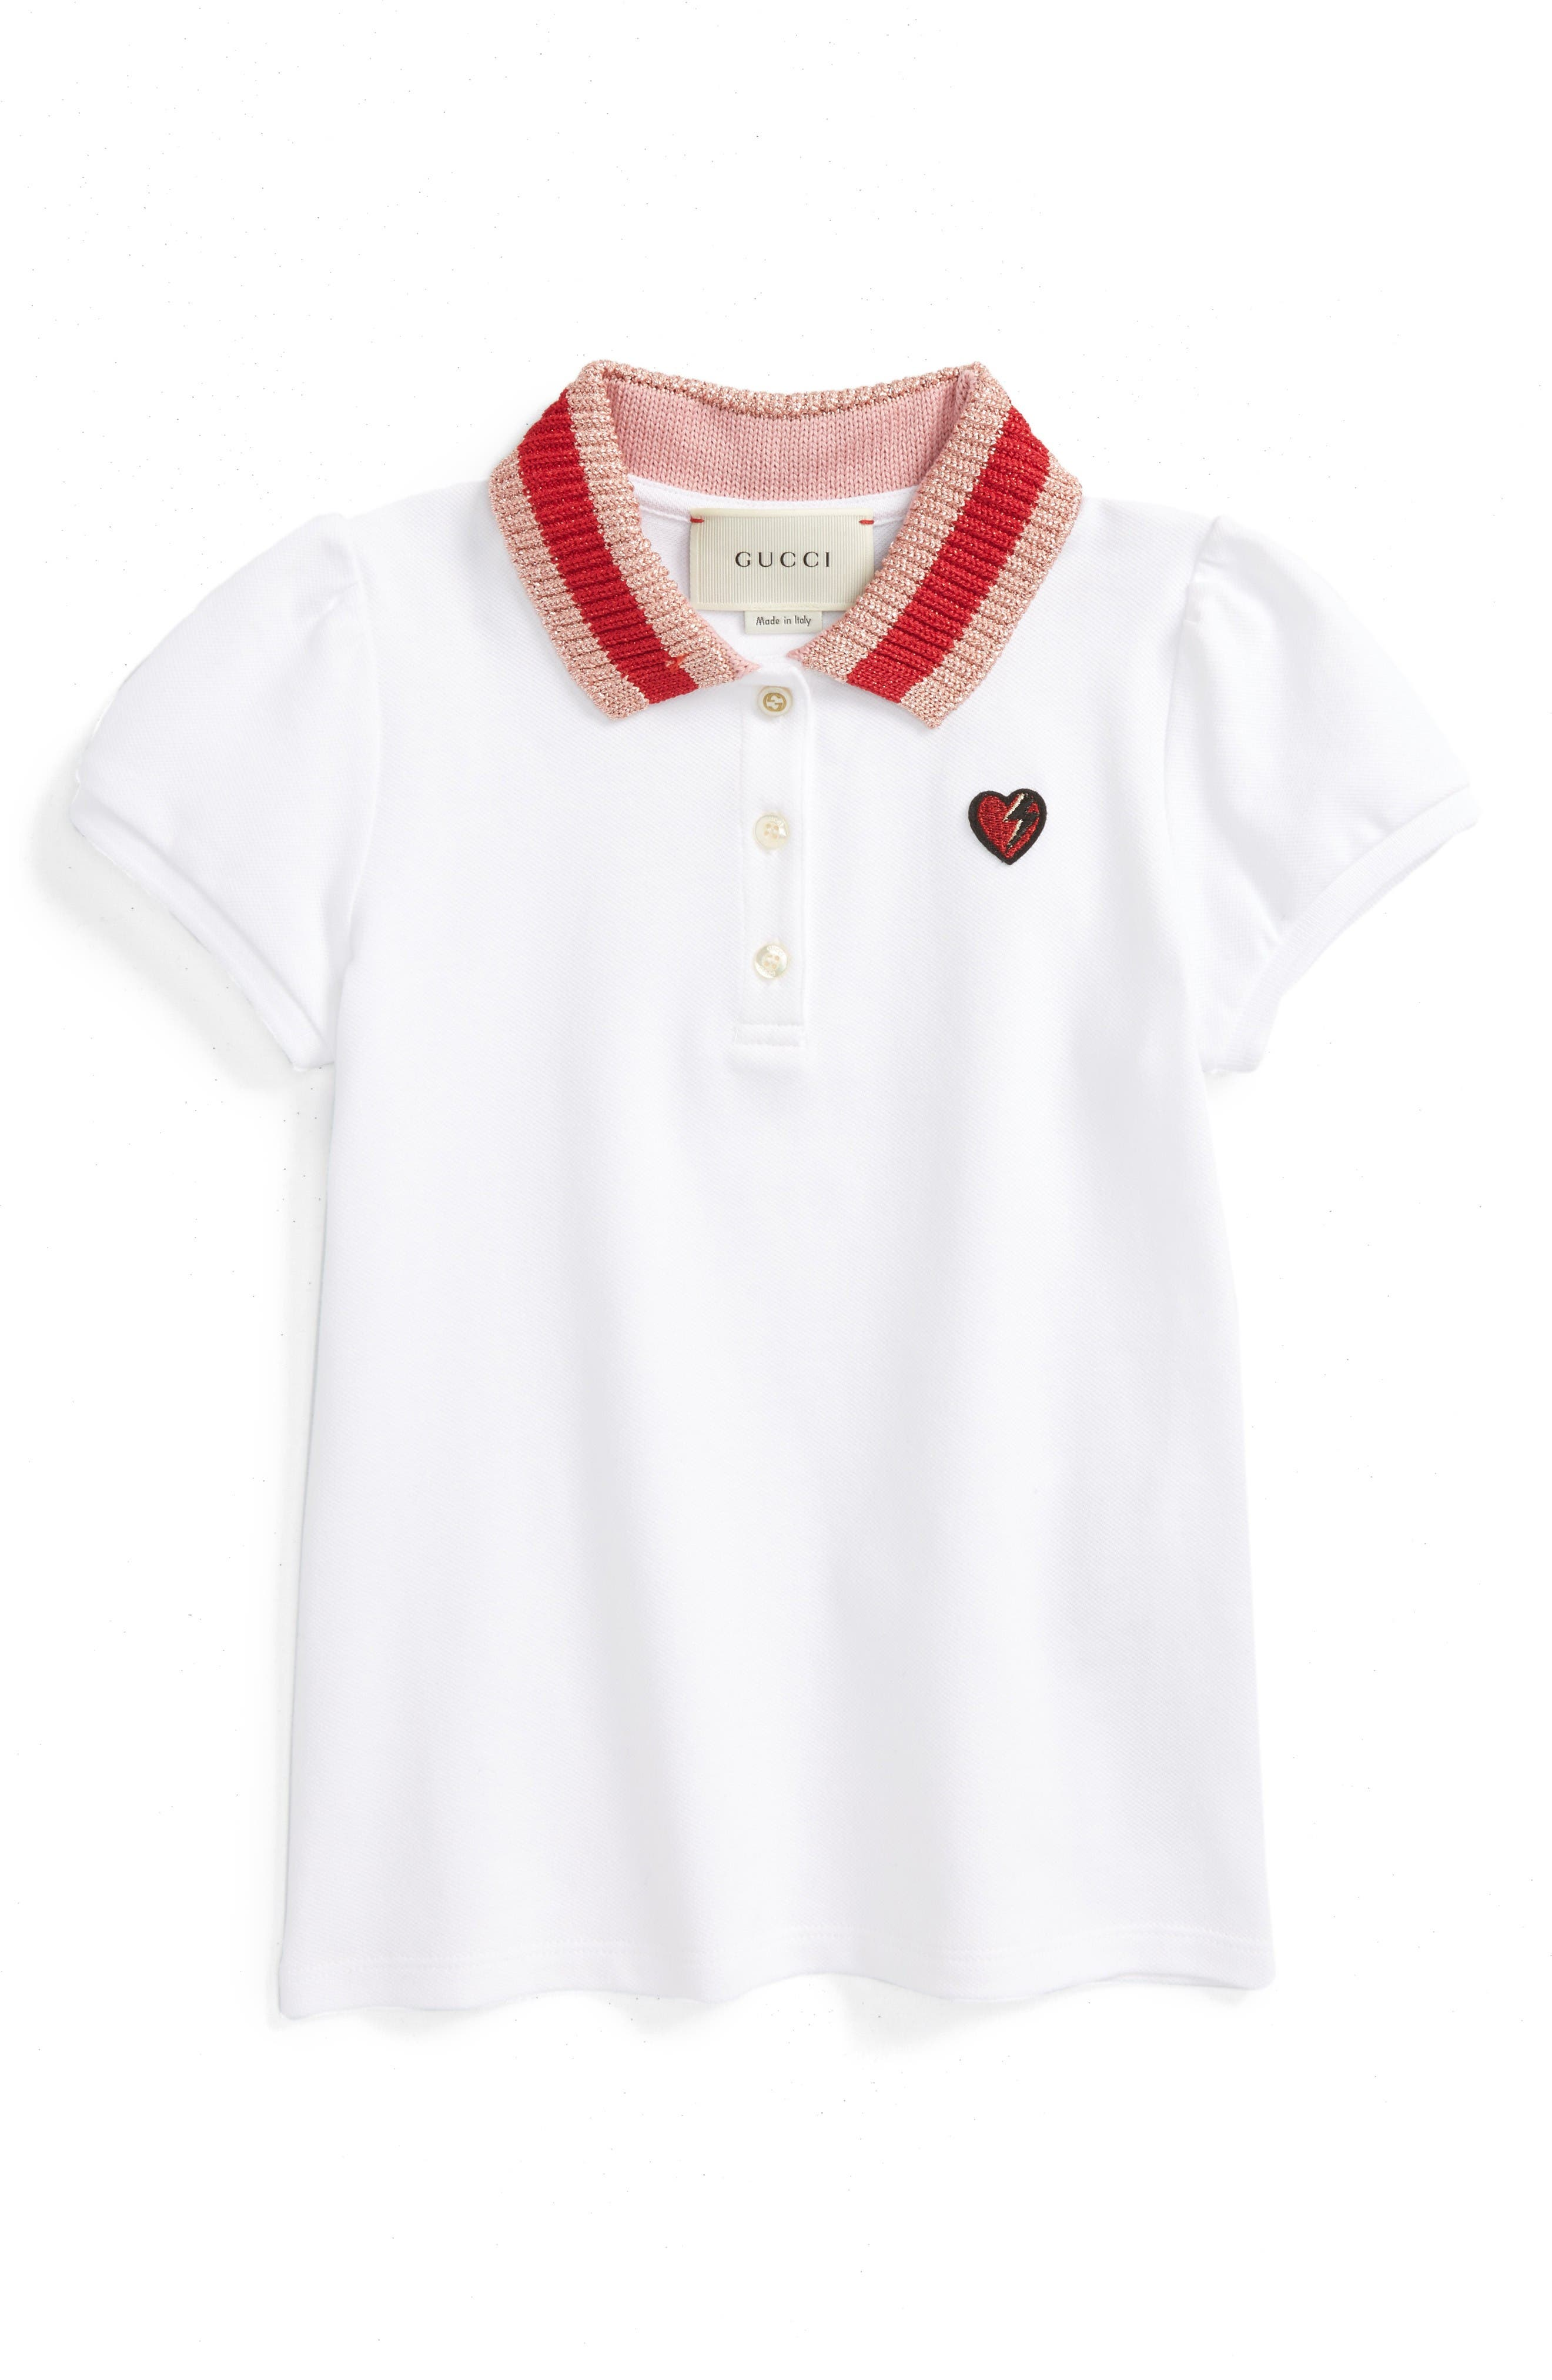 Alternate Image 1 Selected - Gucci Heart Embroidered Polo (Little Girls & Big Girls)